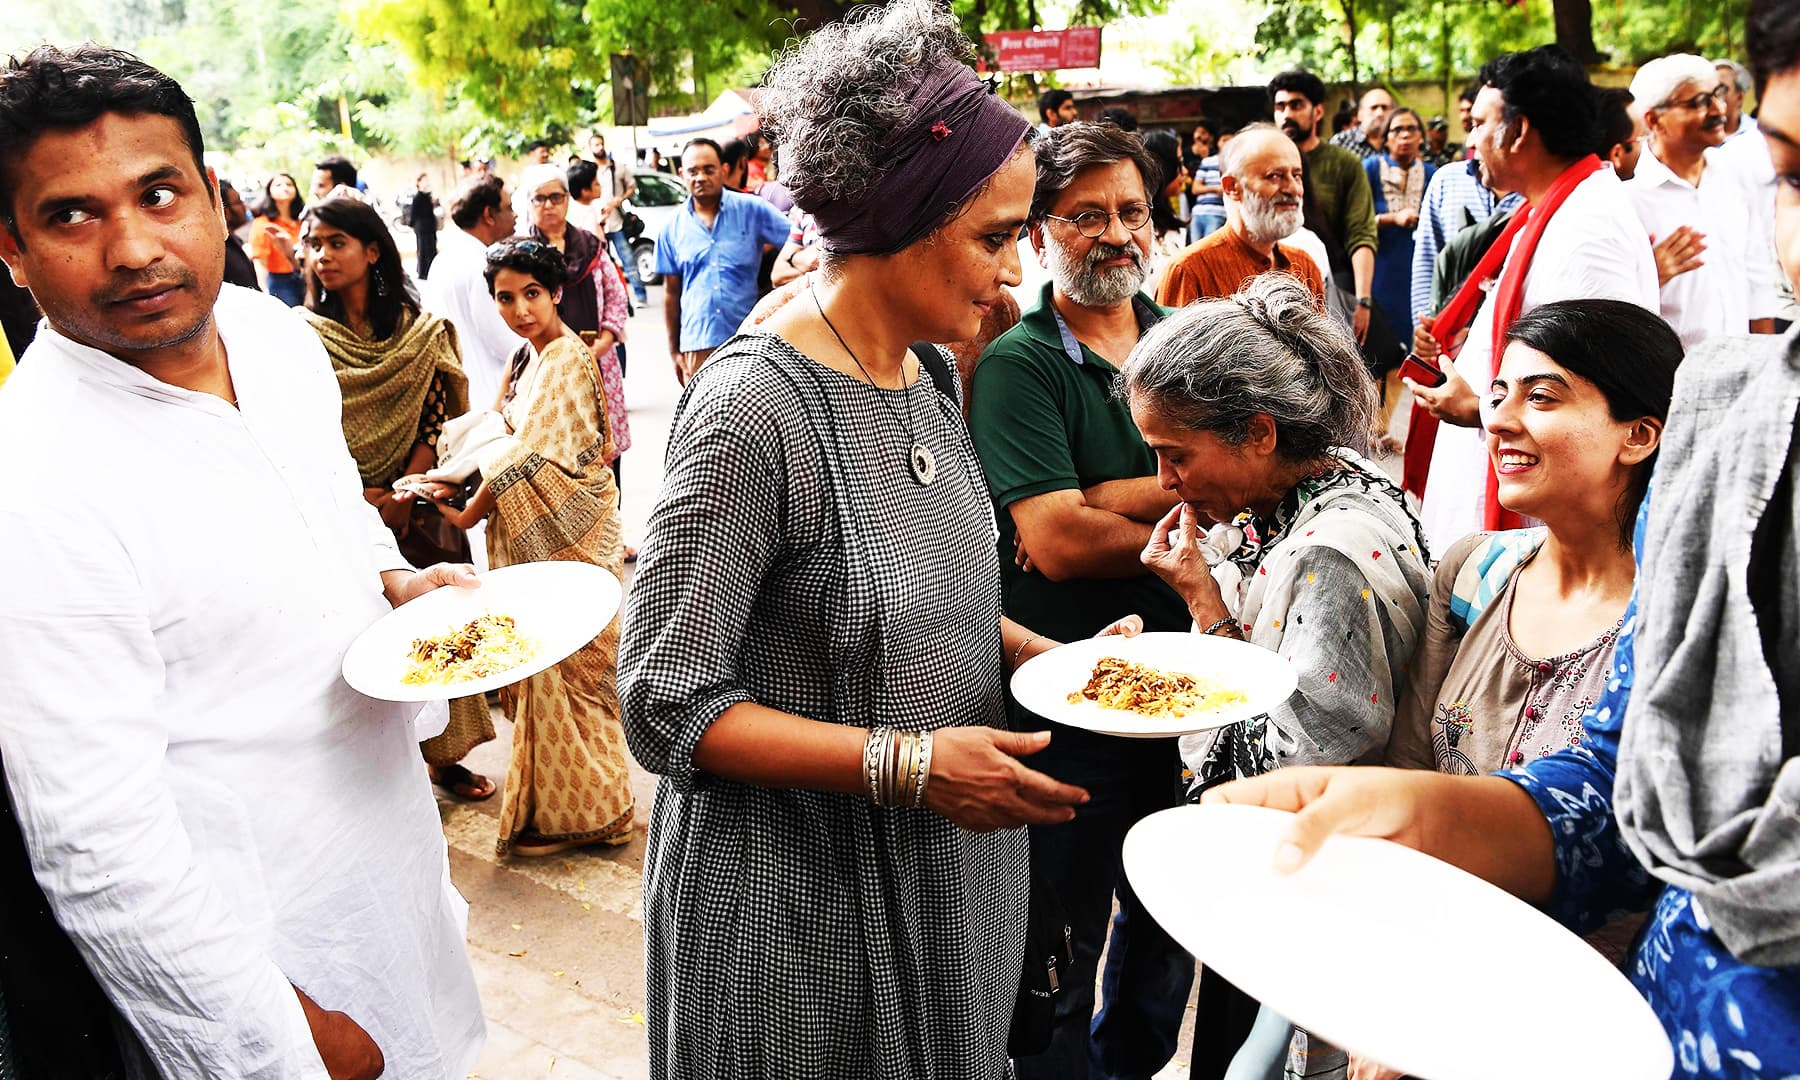 Arundhati Roy (C) takes food with Kashmiri youth during a gathering to celebrate Eidul Azha in New Delhi on August 12, 2019. — AFP